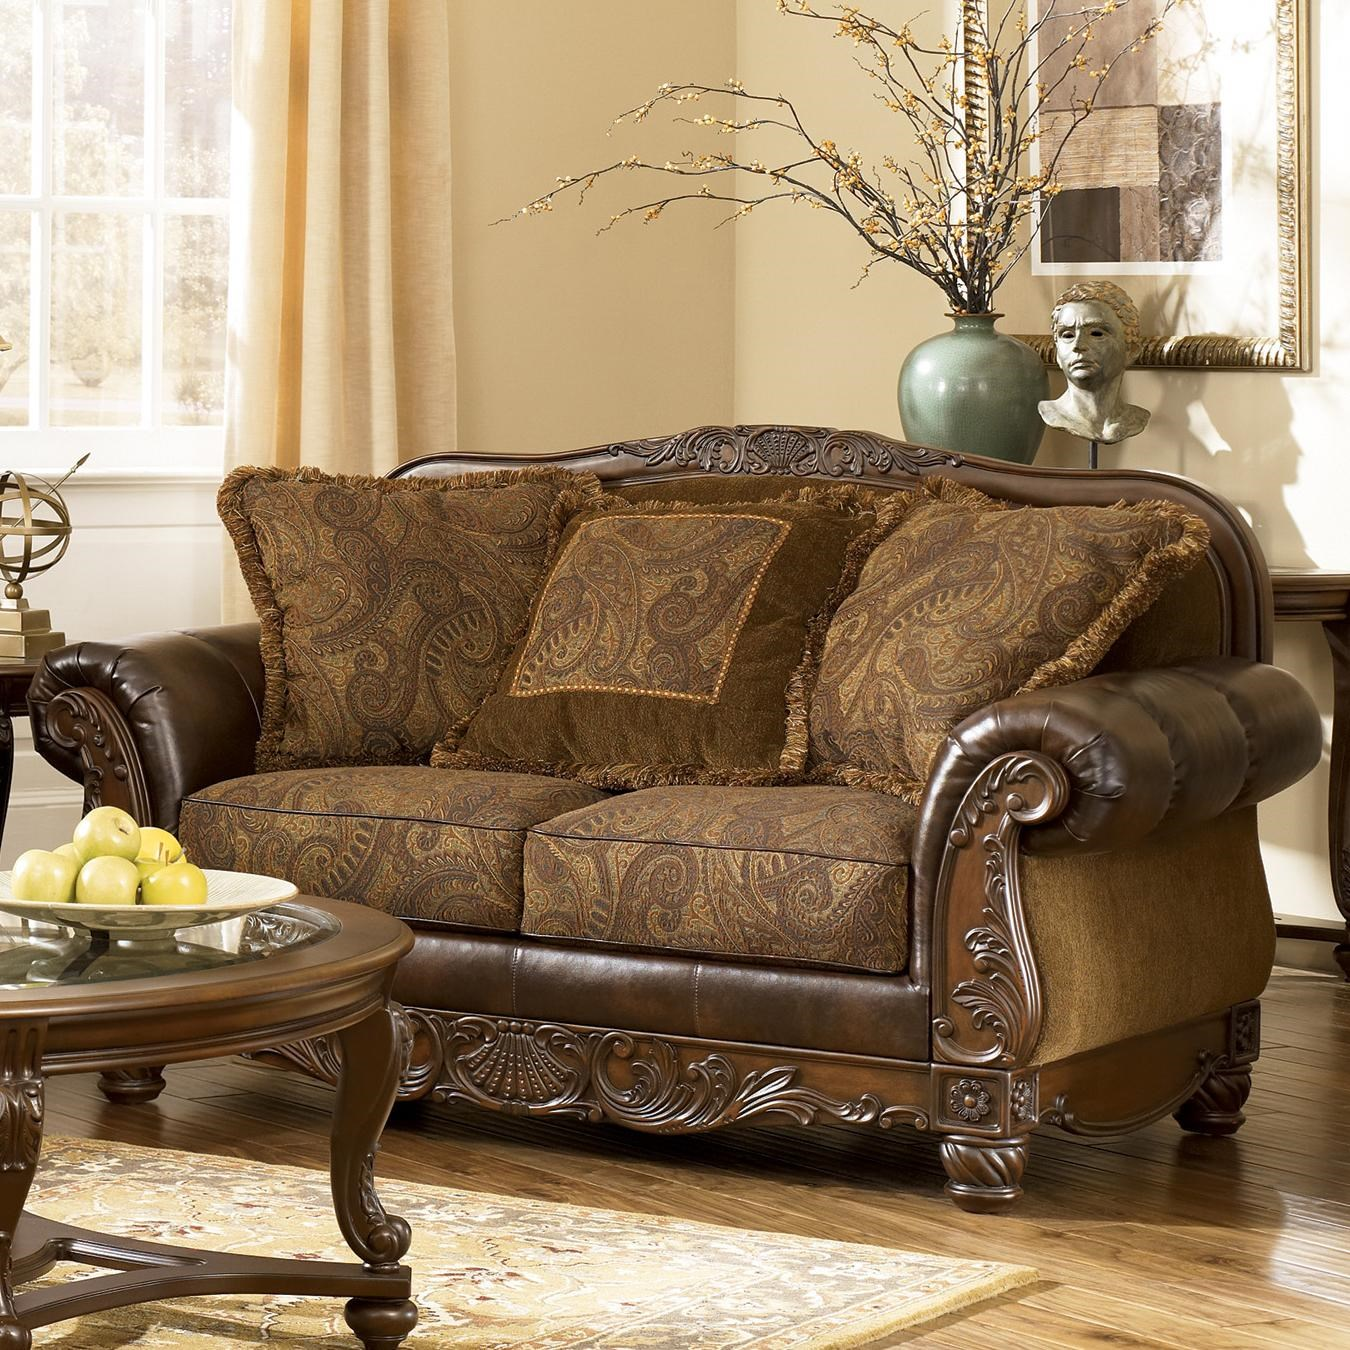 Antique Sofa Loveseat: Signature Design By Ashley Fresco DuraBlend